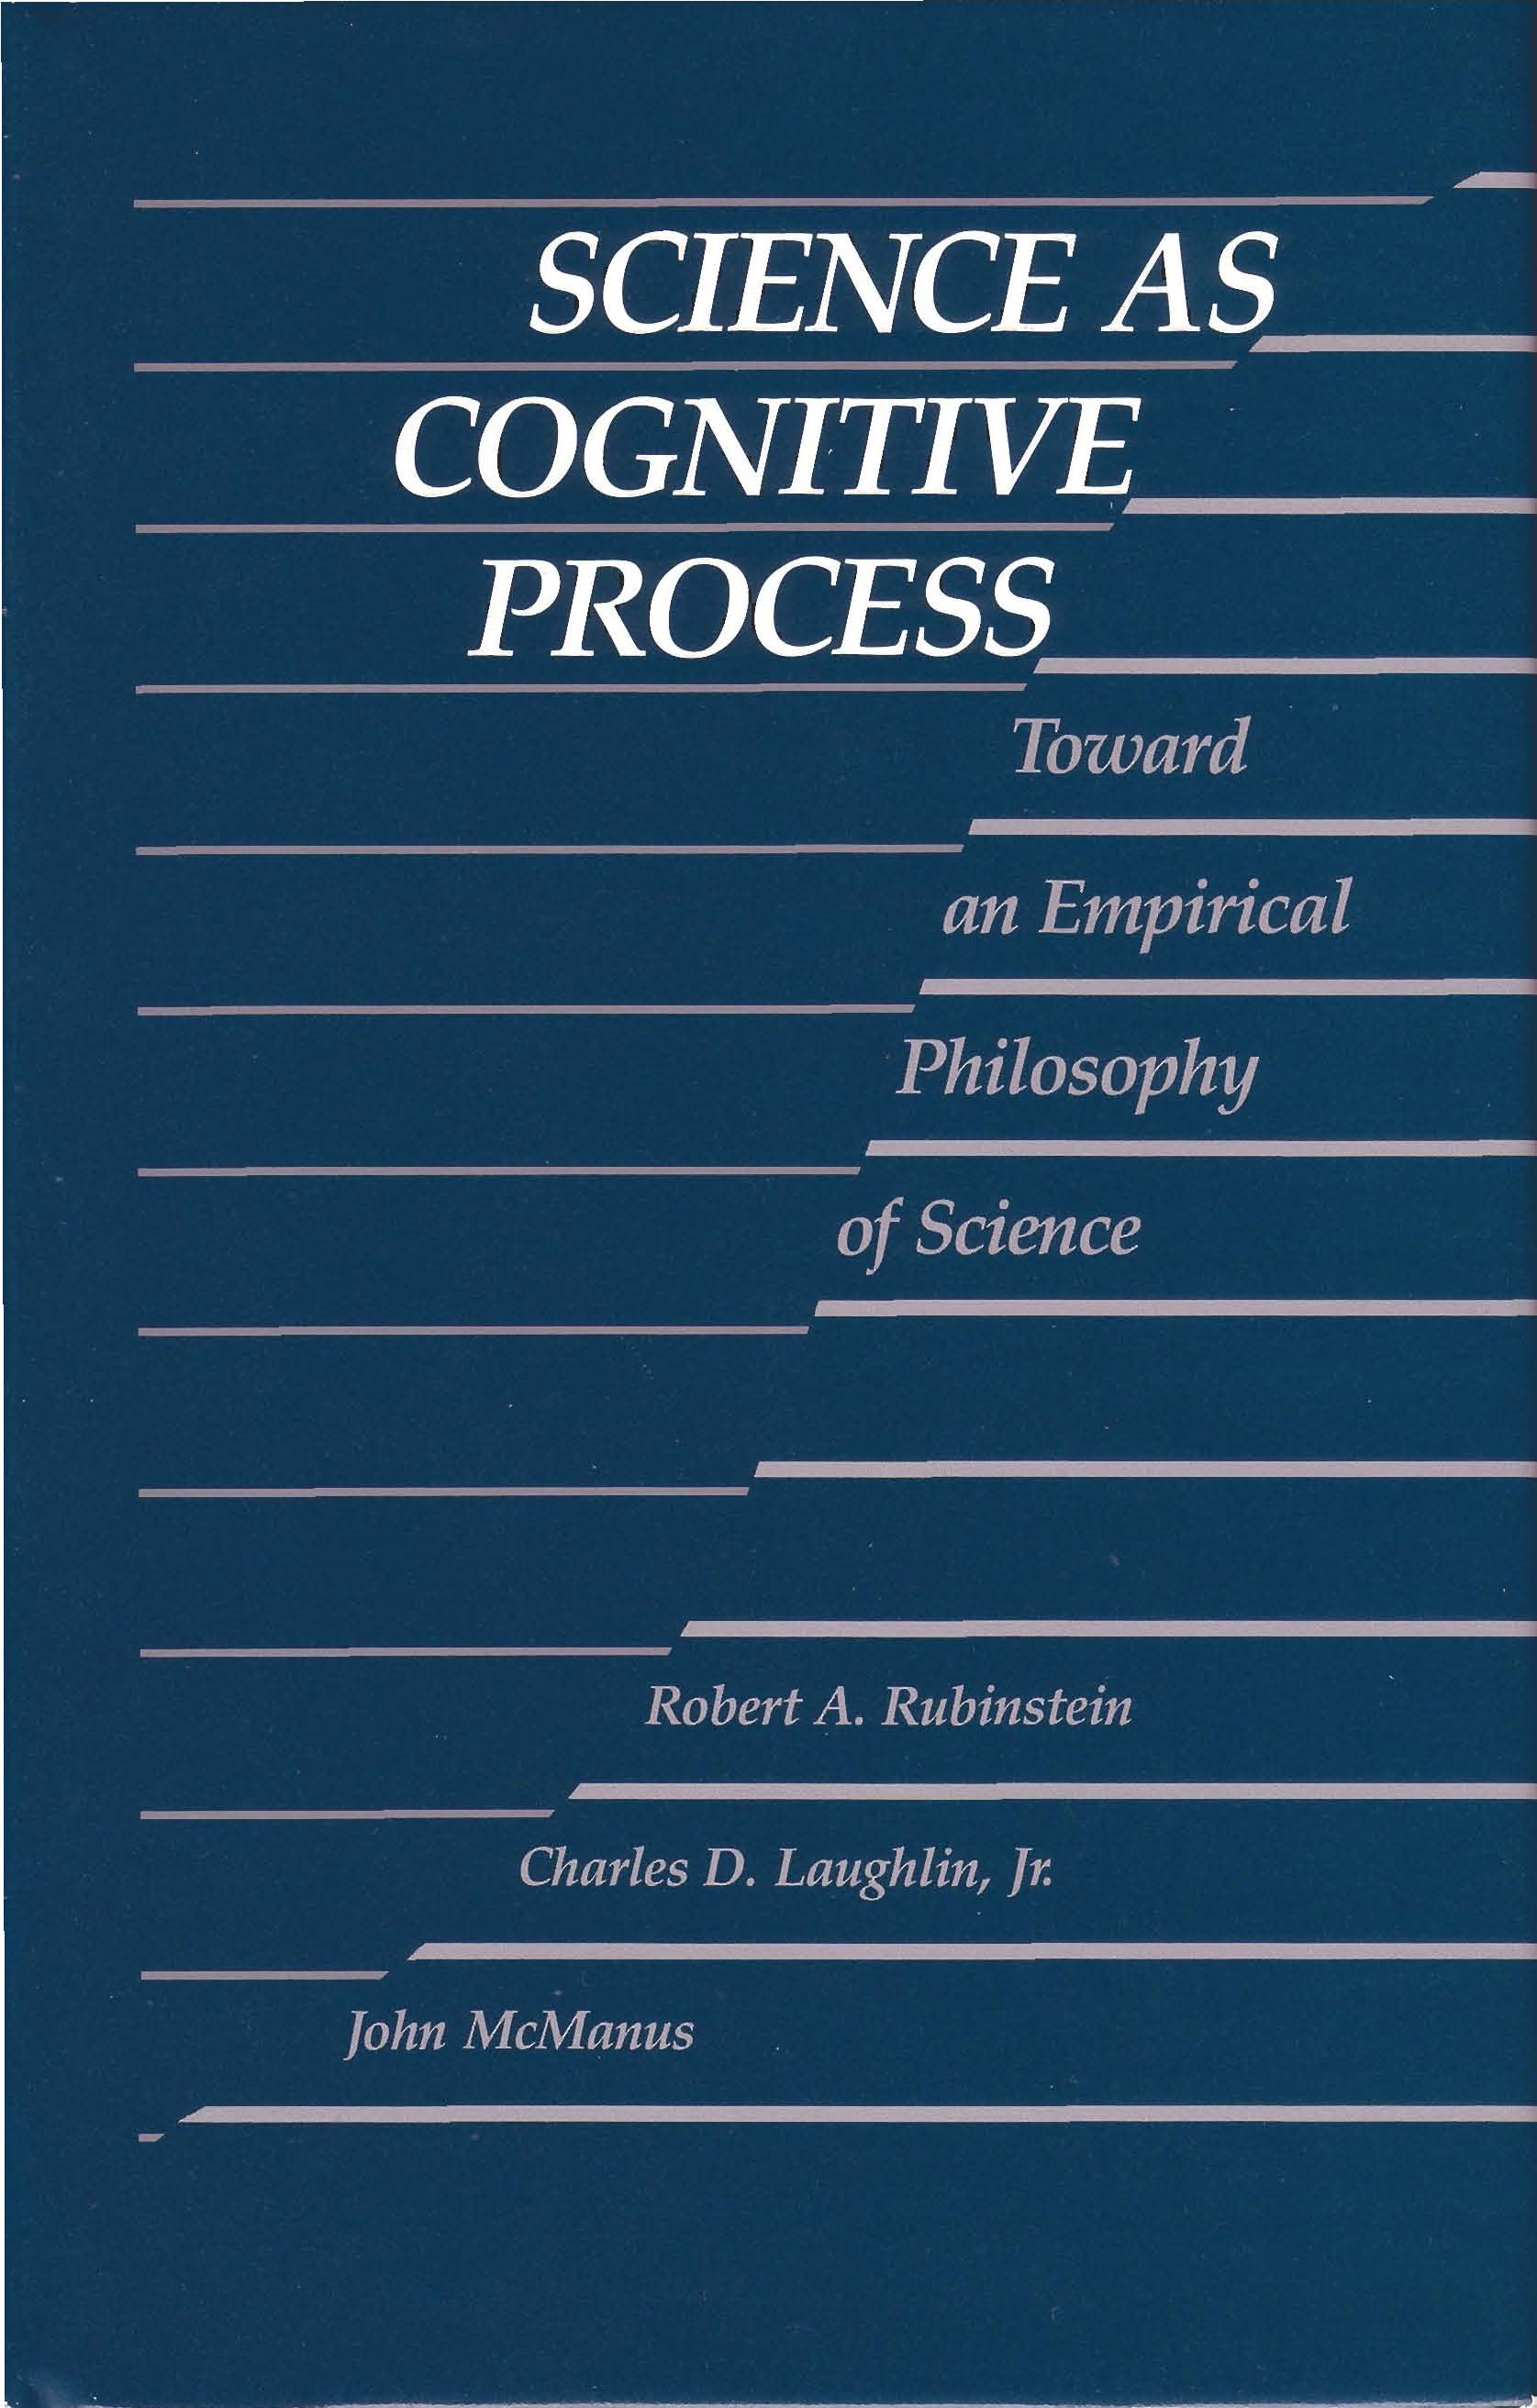 Science as Cognitive Process